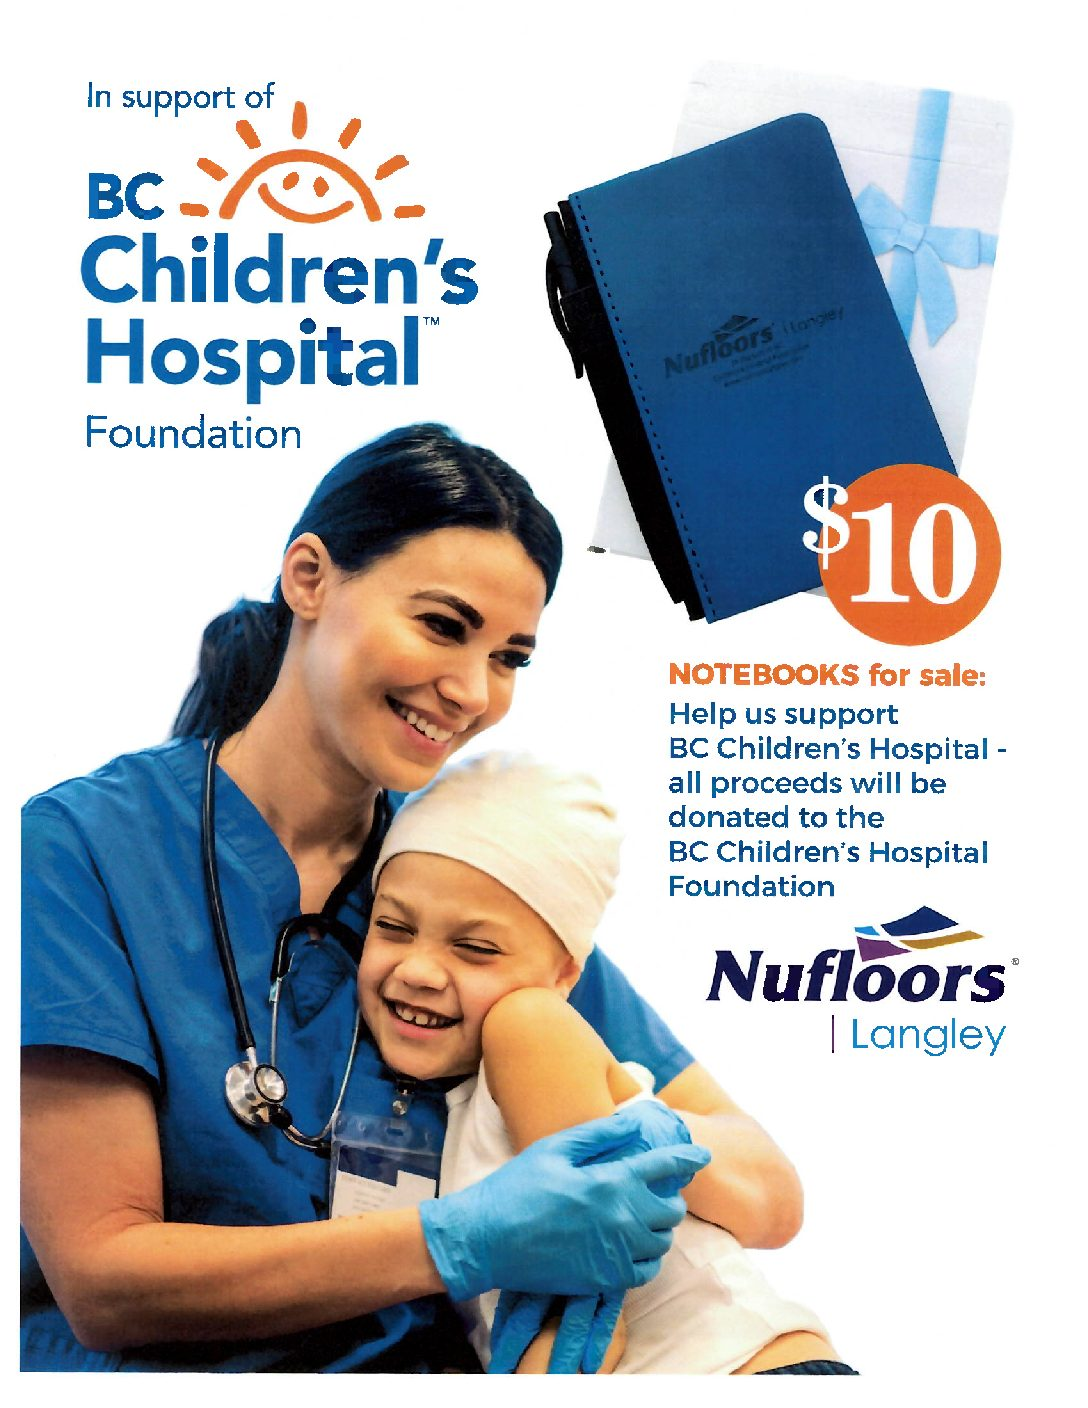 HELPING KIDS SHINE <br> All Proceeds donated to <br /> BC Children's Hospital Foundation